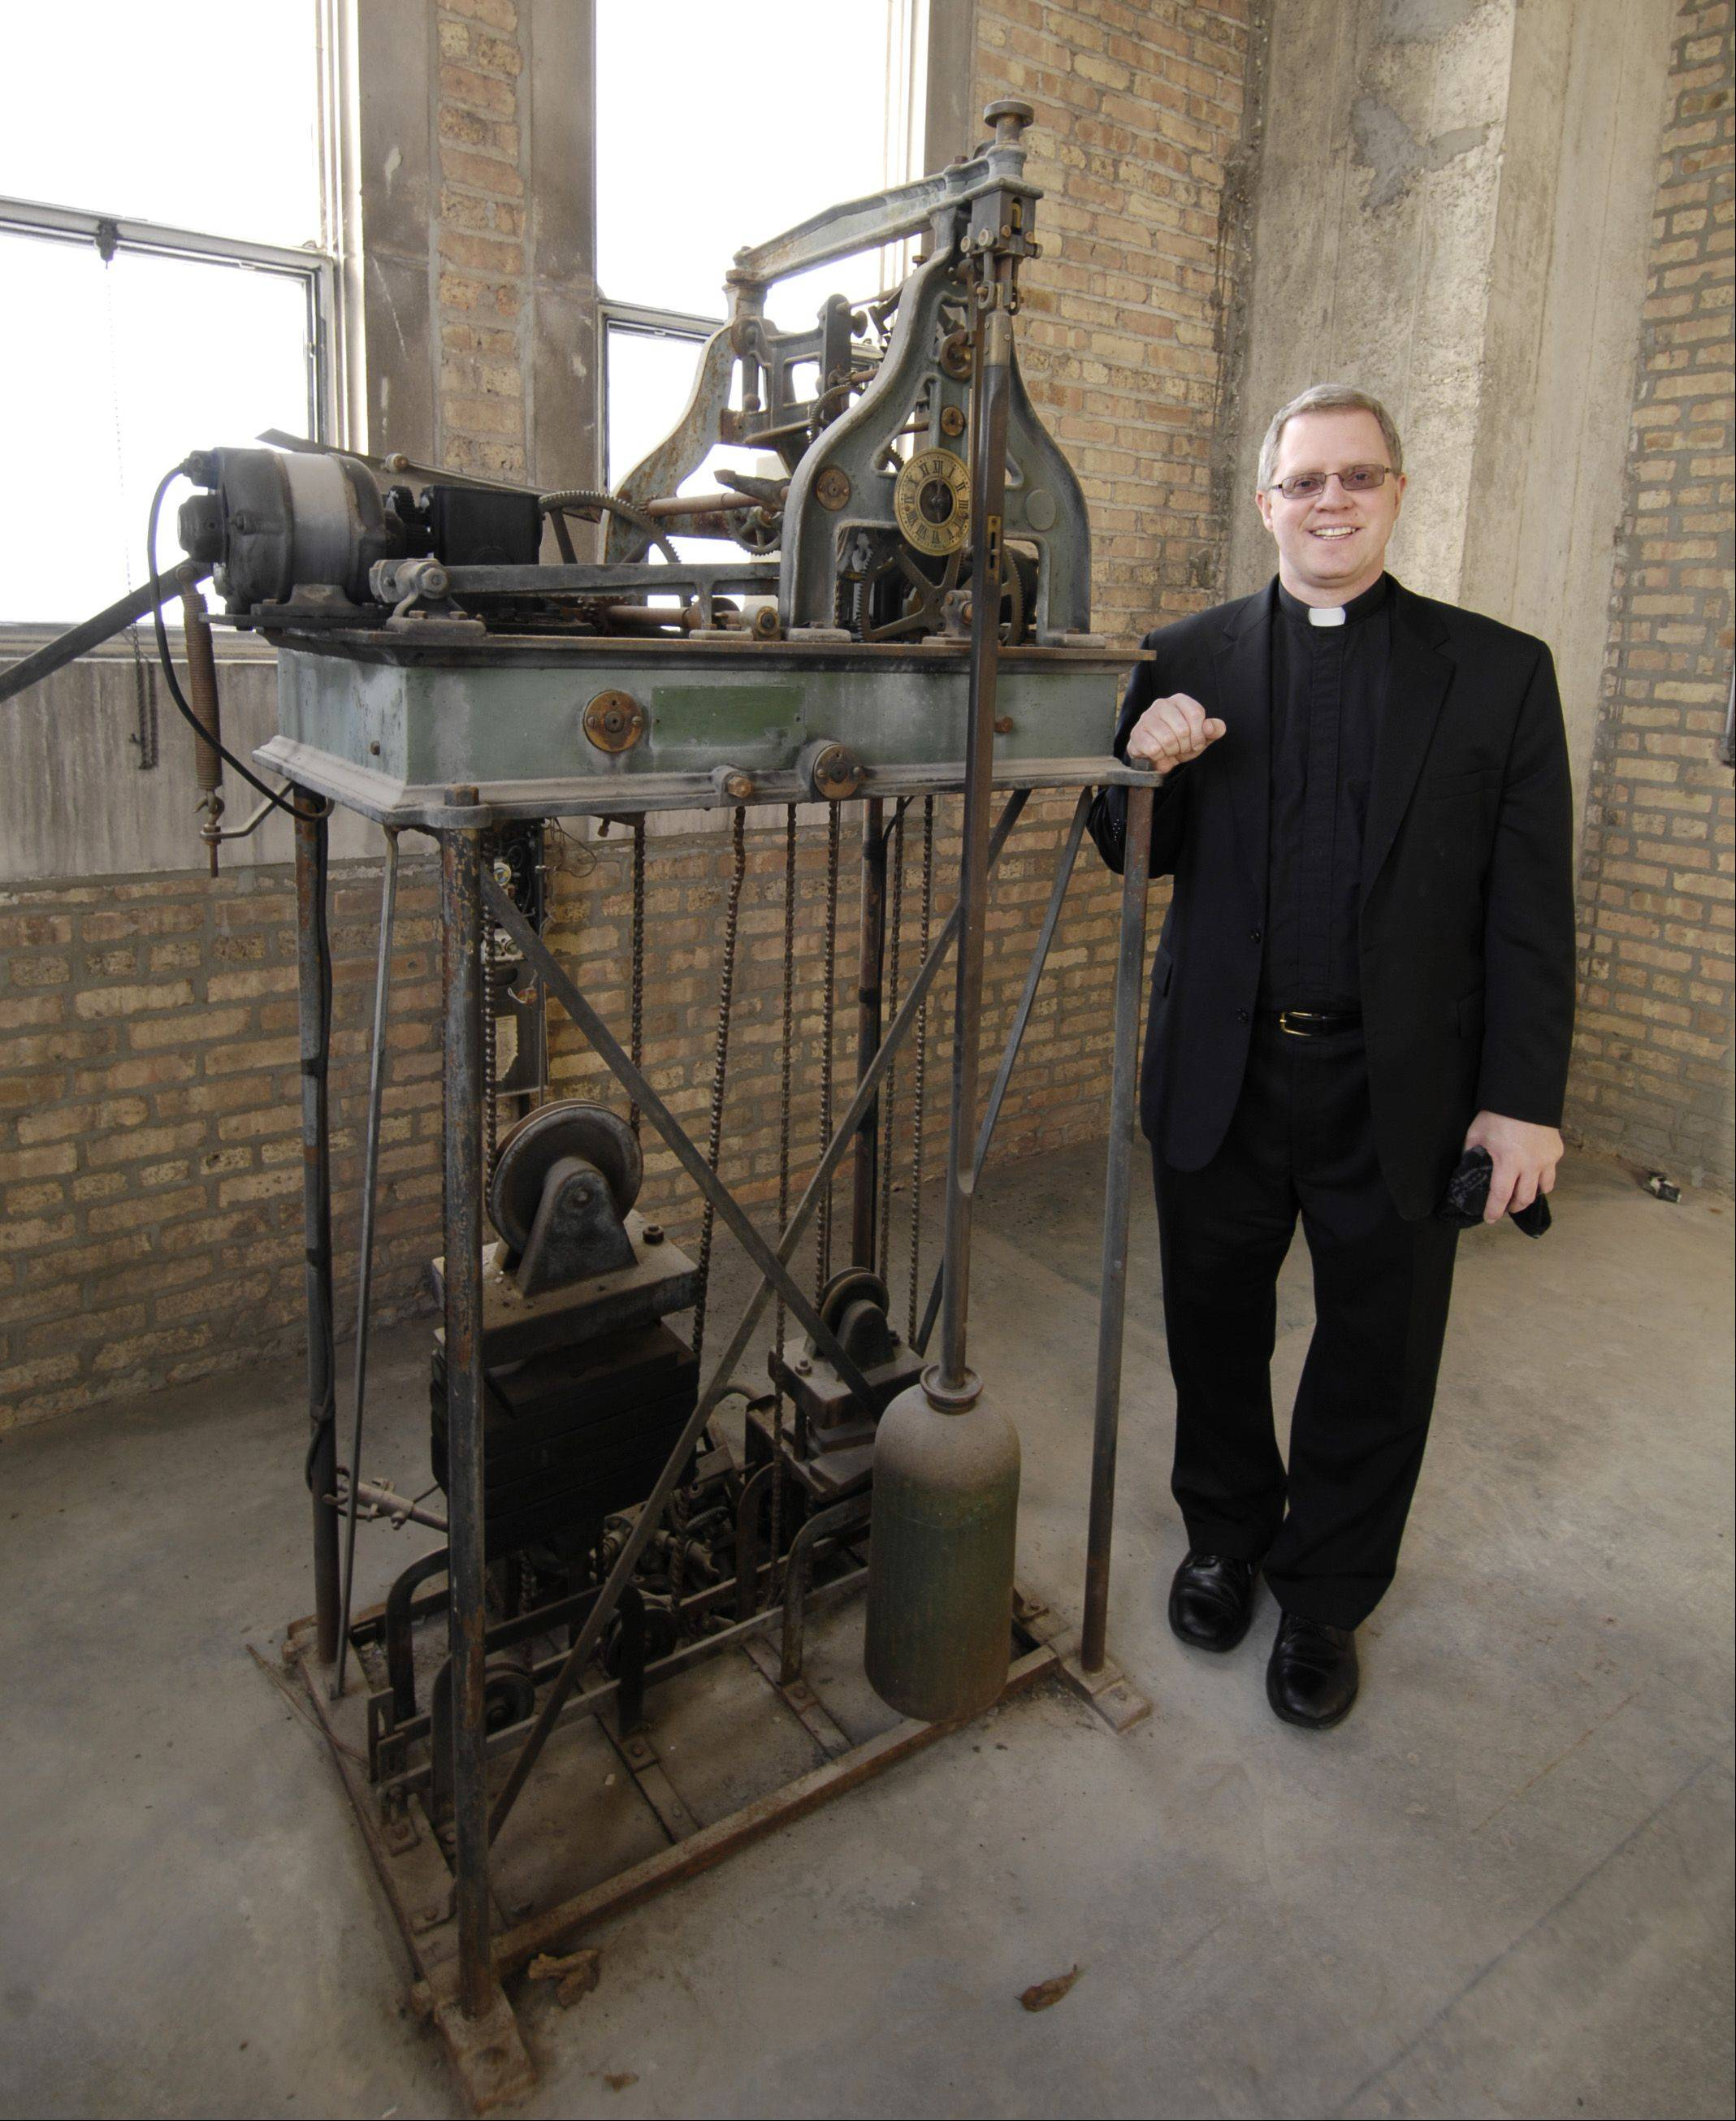 It's been 27 years since the bell-ringing mechanism has been at Ss. Peter and Paul Catholic Church in Naperville. Electronics have recreated the sound of ringing bells, but soon the Rev. Tom Milota have the chance to ring real bells again.